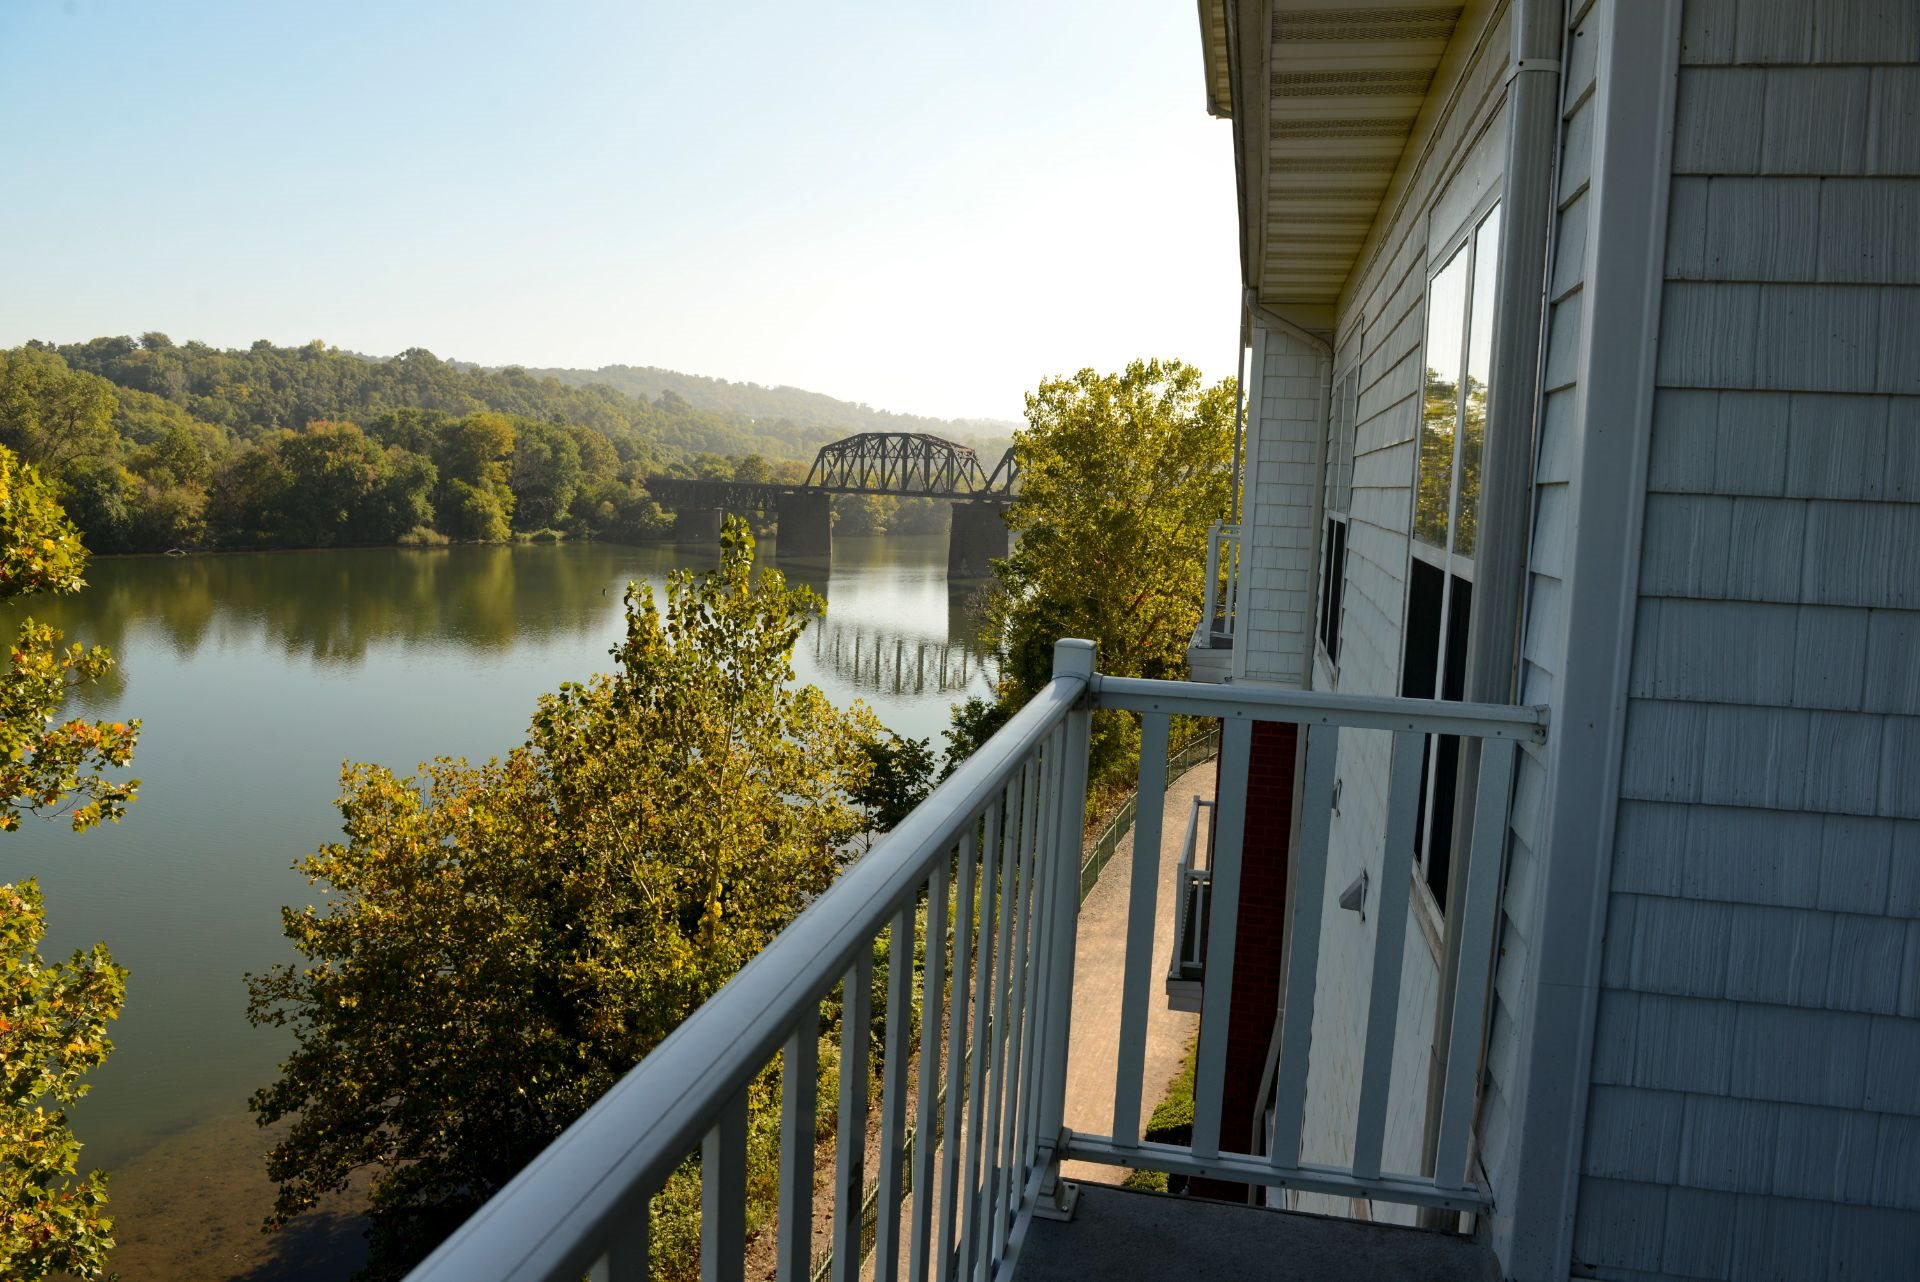 Luxury 1, 2 and 3 Bedroom Apartments and Townhomes with a Balconies and River views,  611 E. Waterfront Drive, Munhall, PA 15120